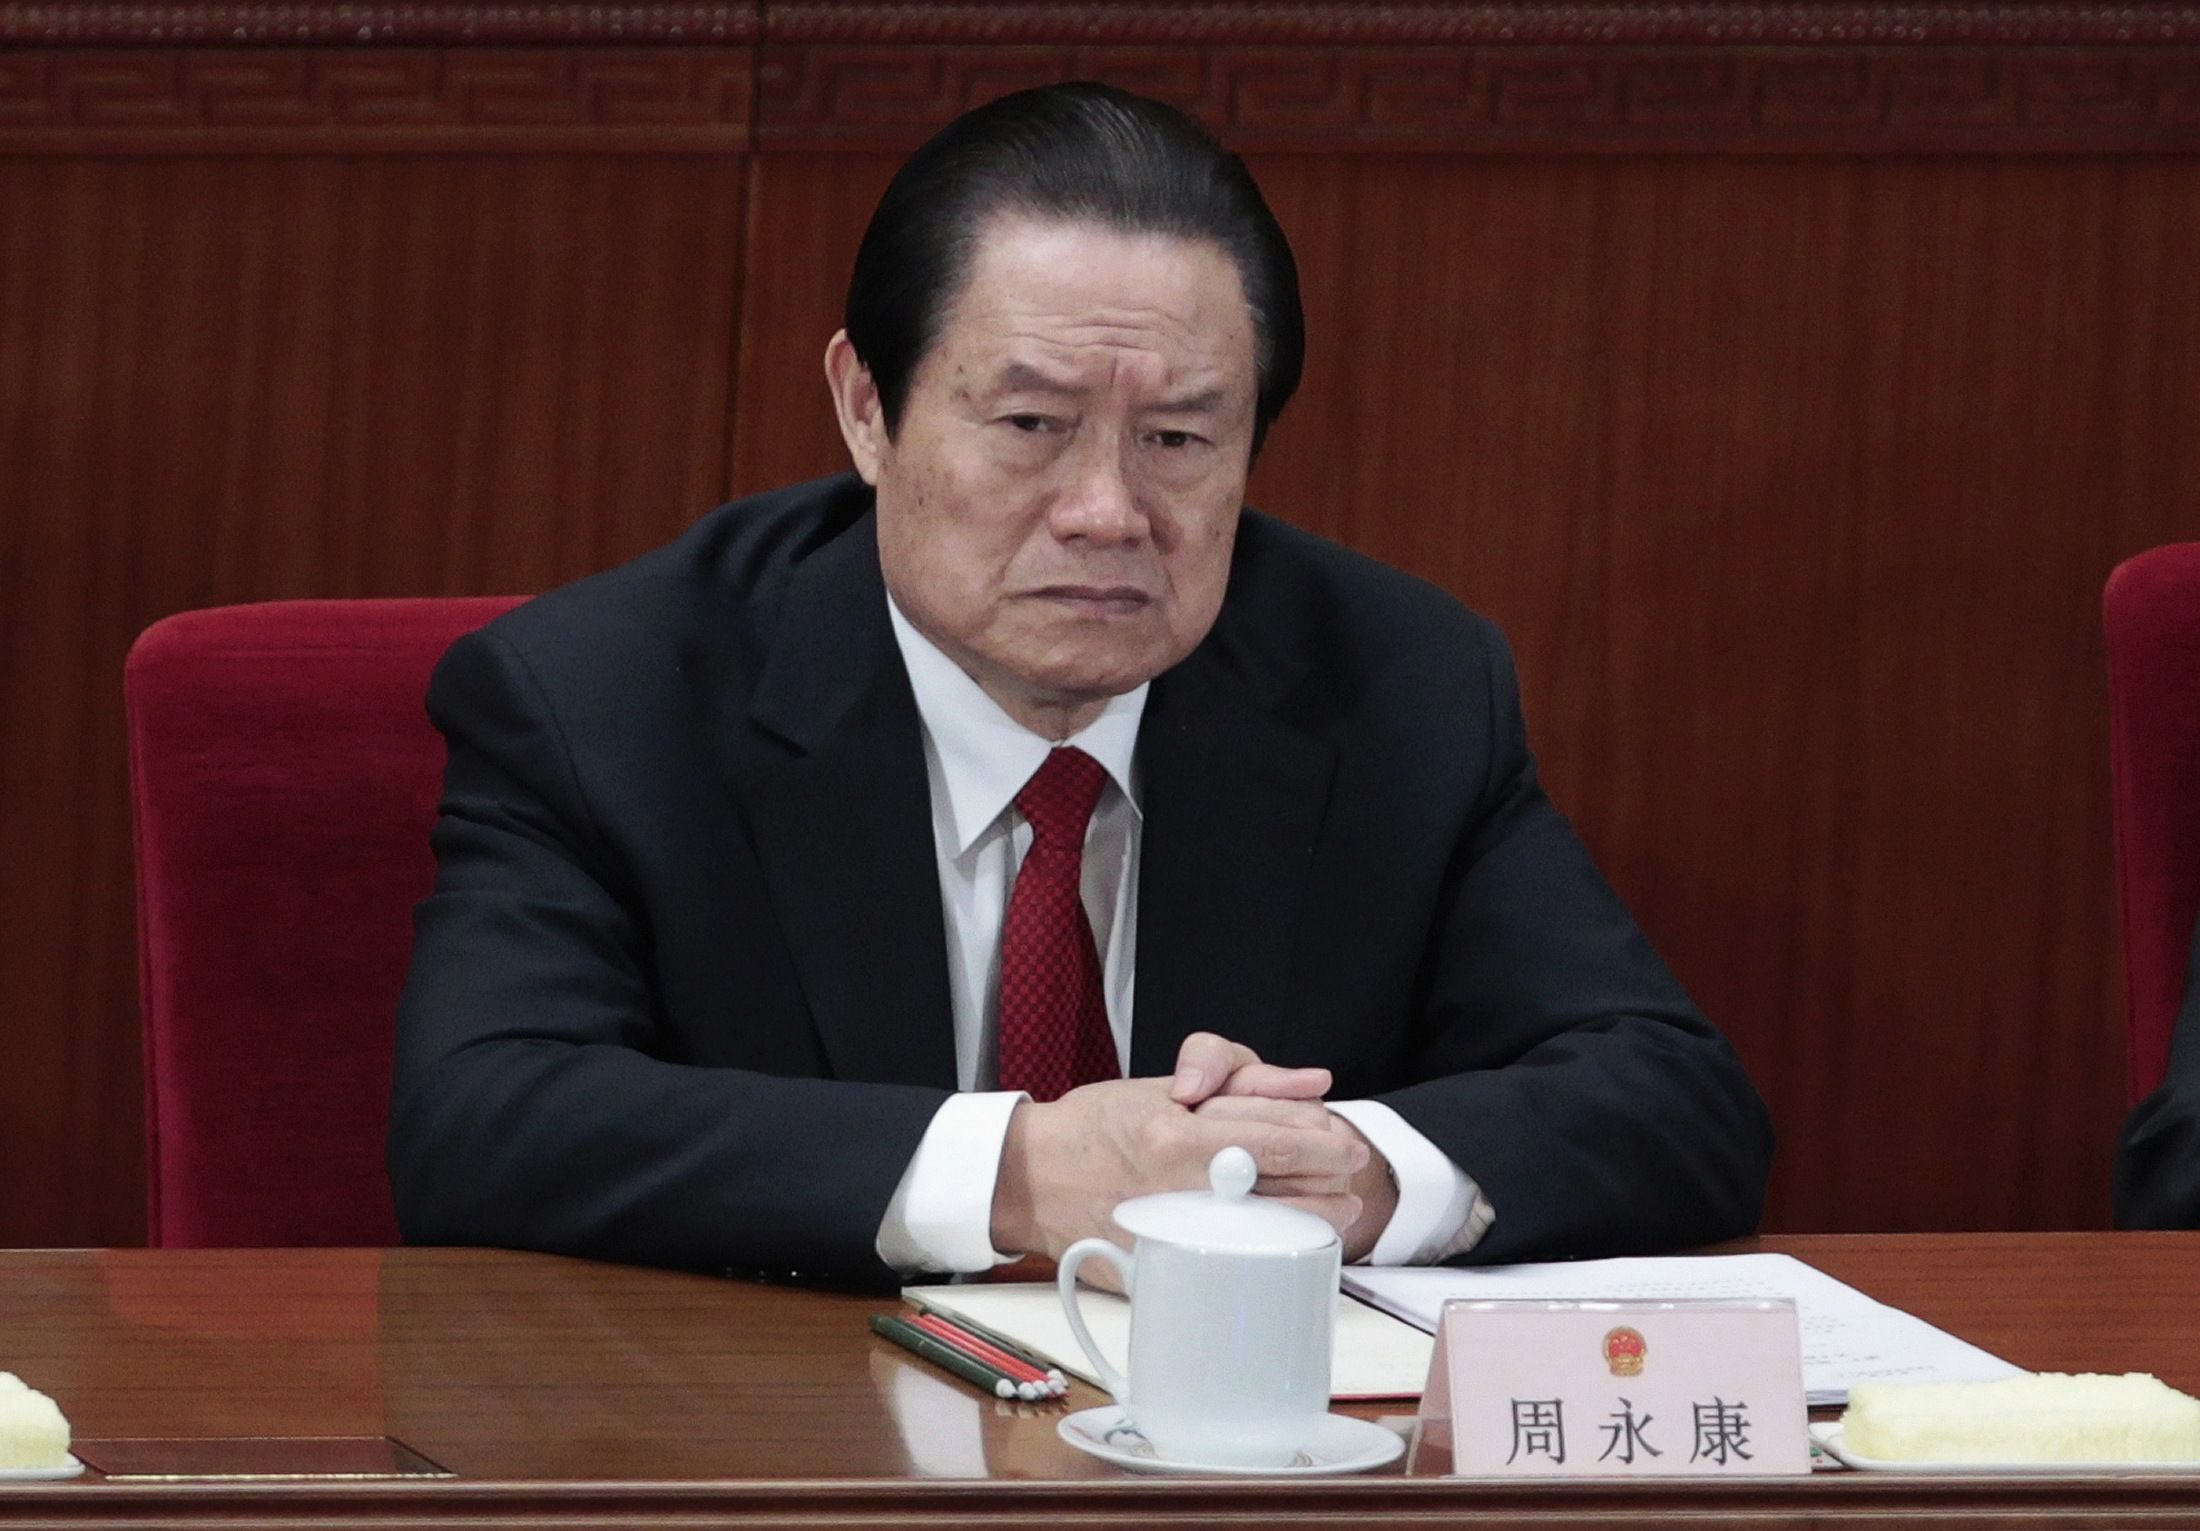 Zhou Yongkang expelled and arrested